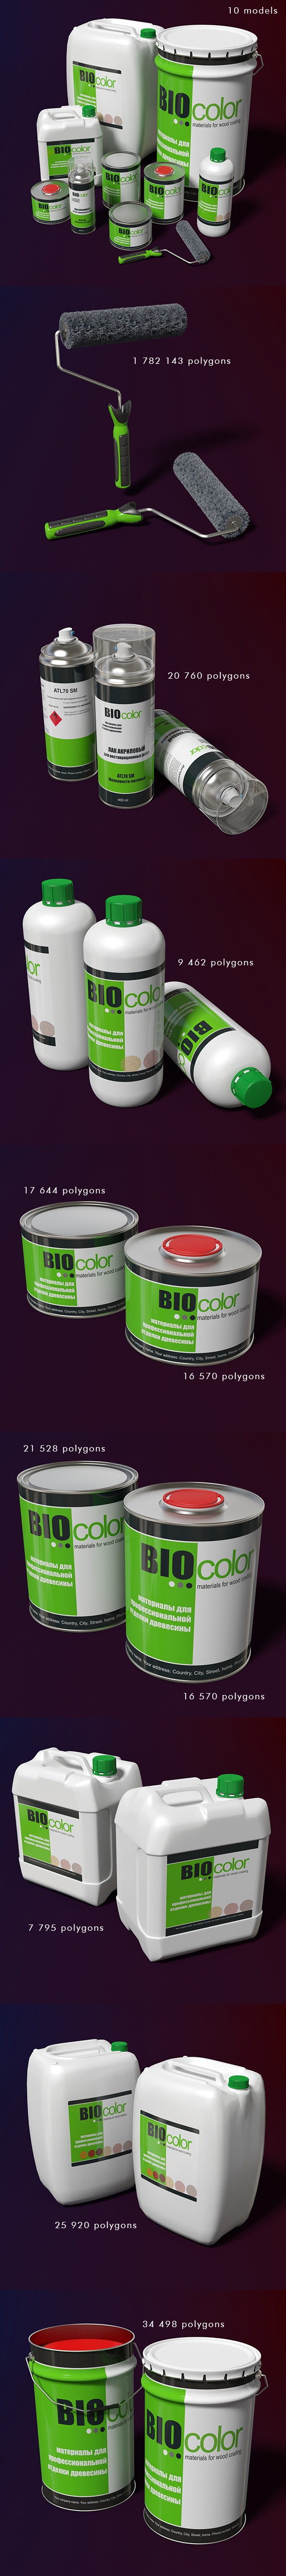 Cans, spray and jerrycans of paint  + RollerPaint - 3DOcean Item for Sale